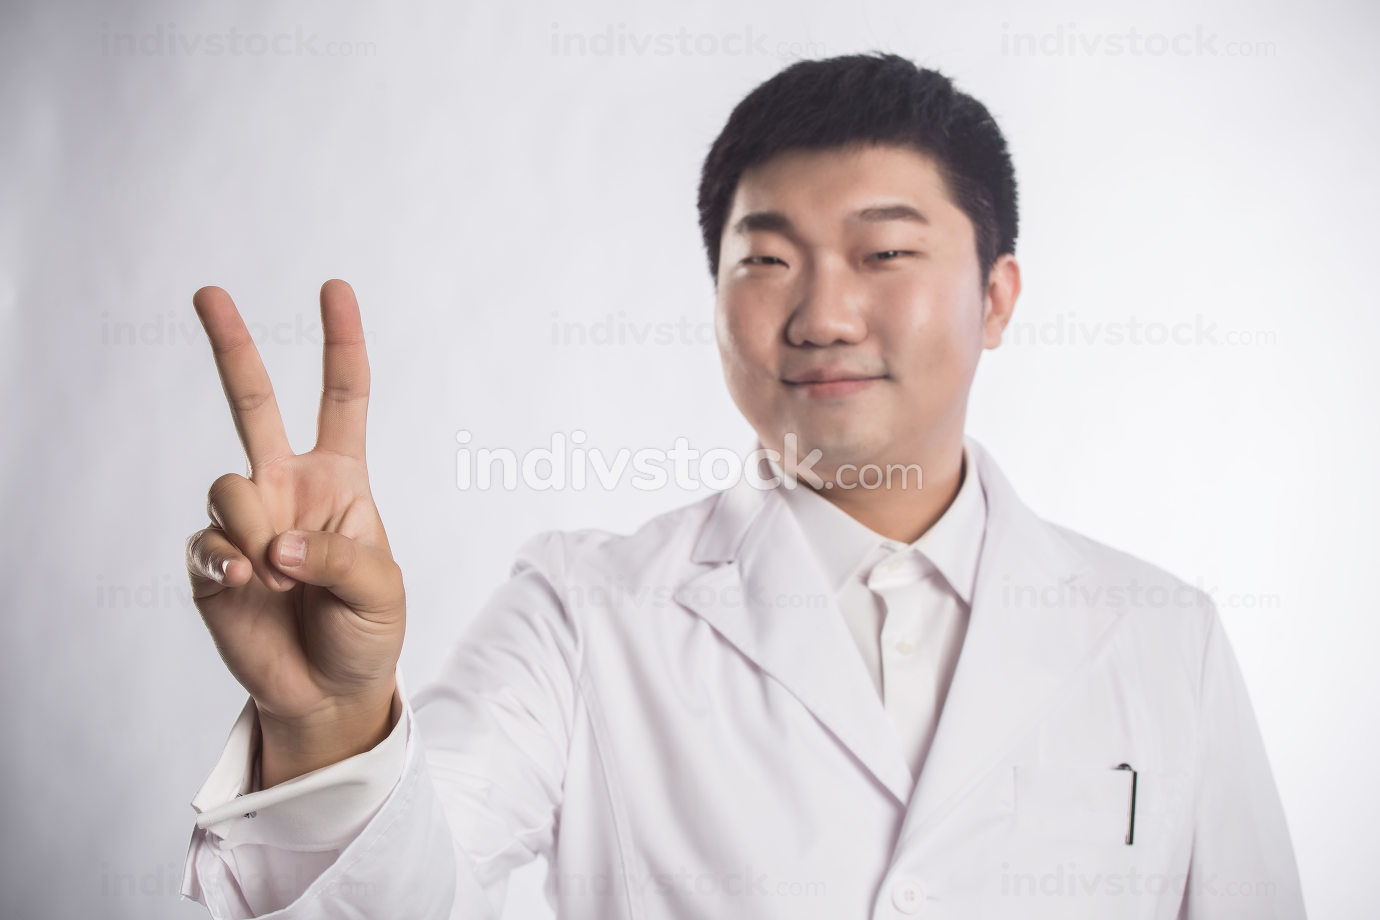 mature doctor making the victory sign while holding a notepad on white background